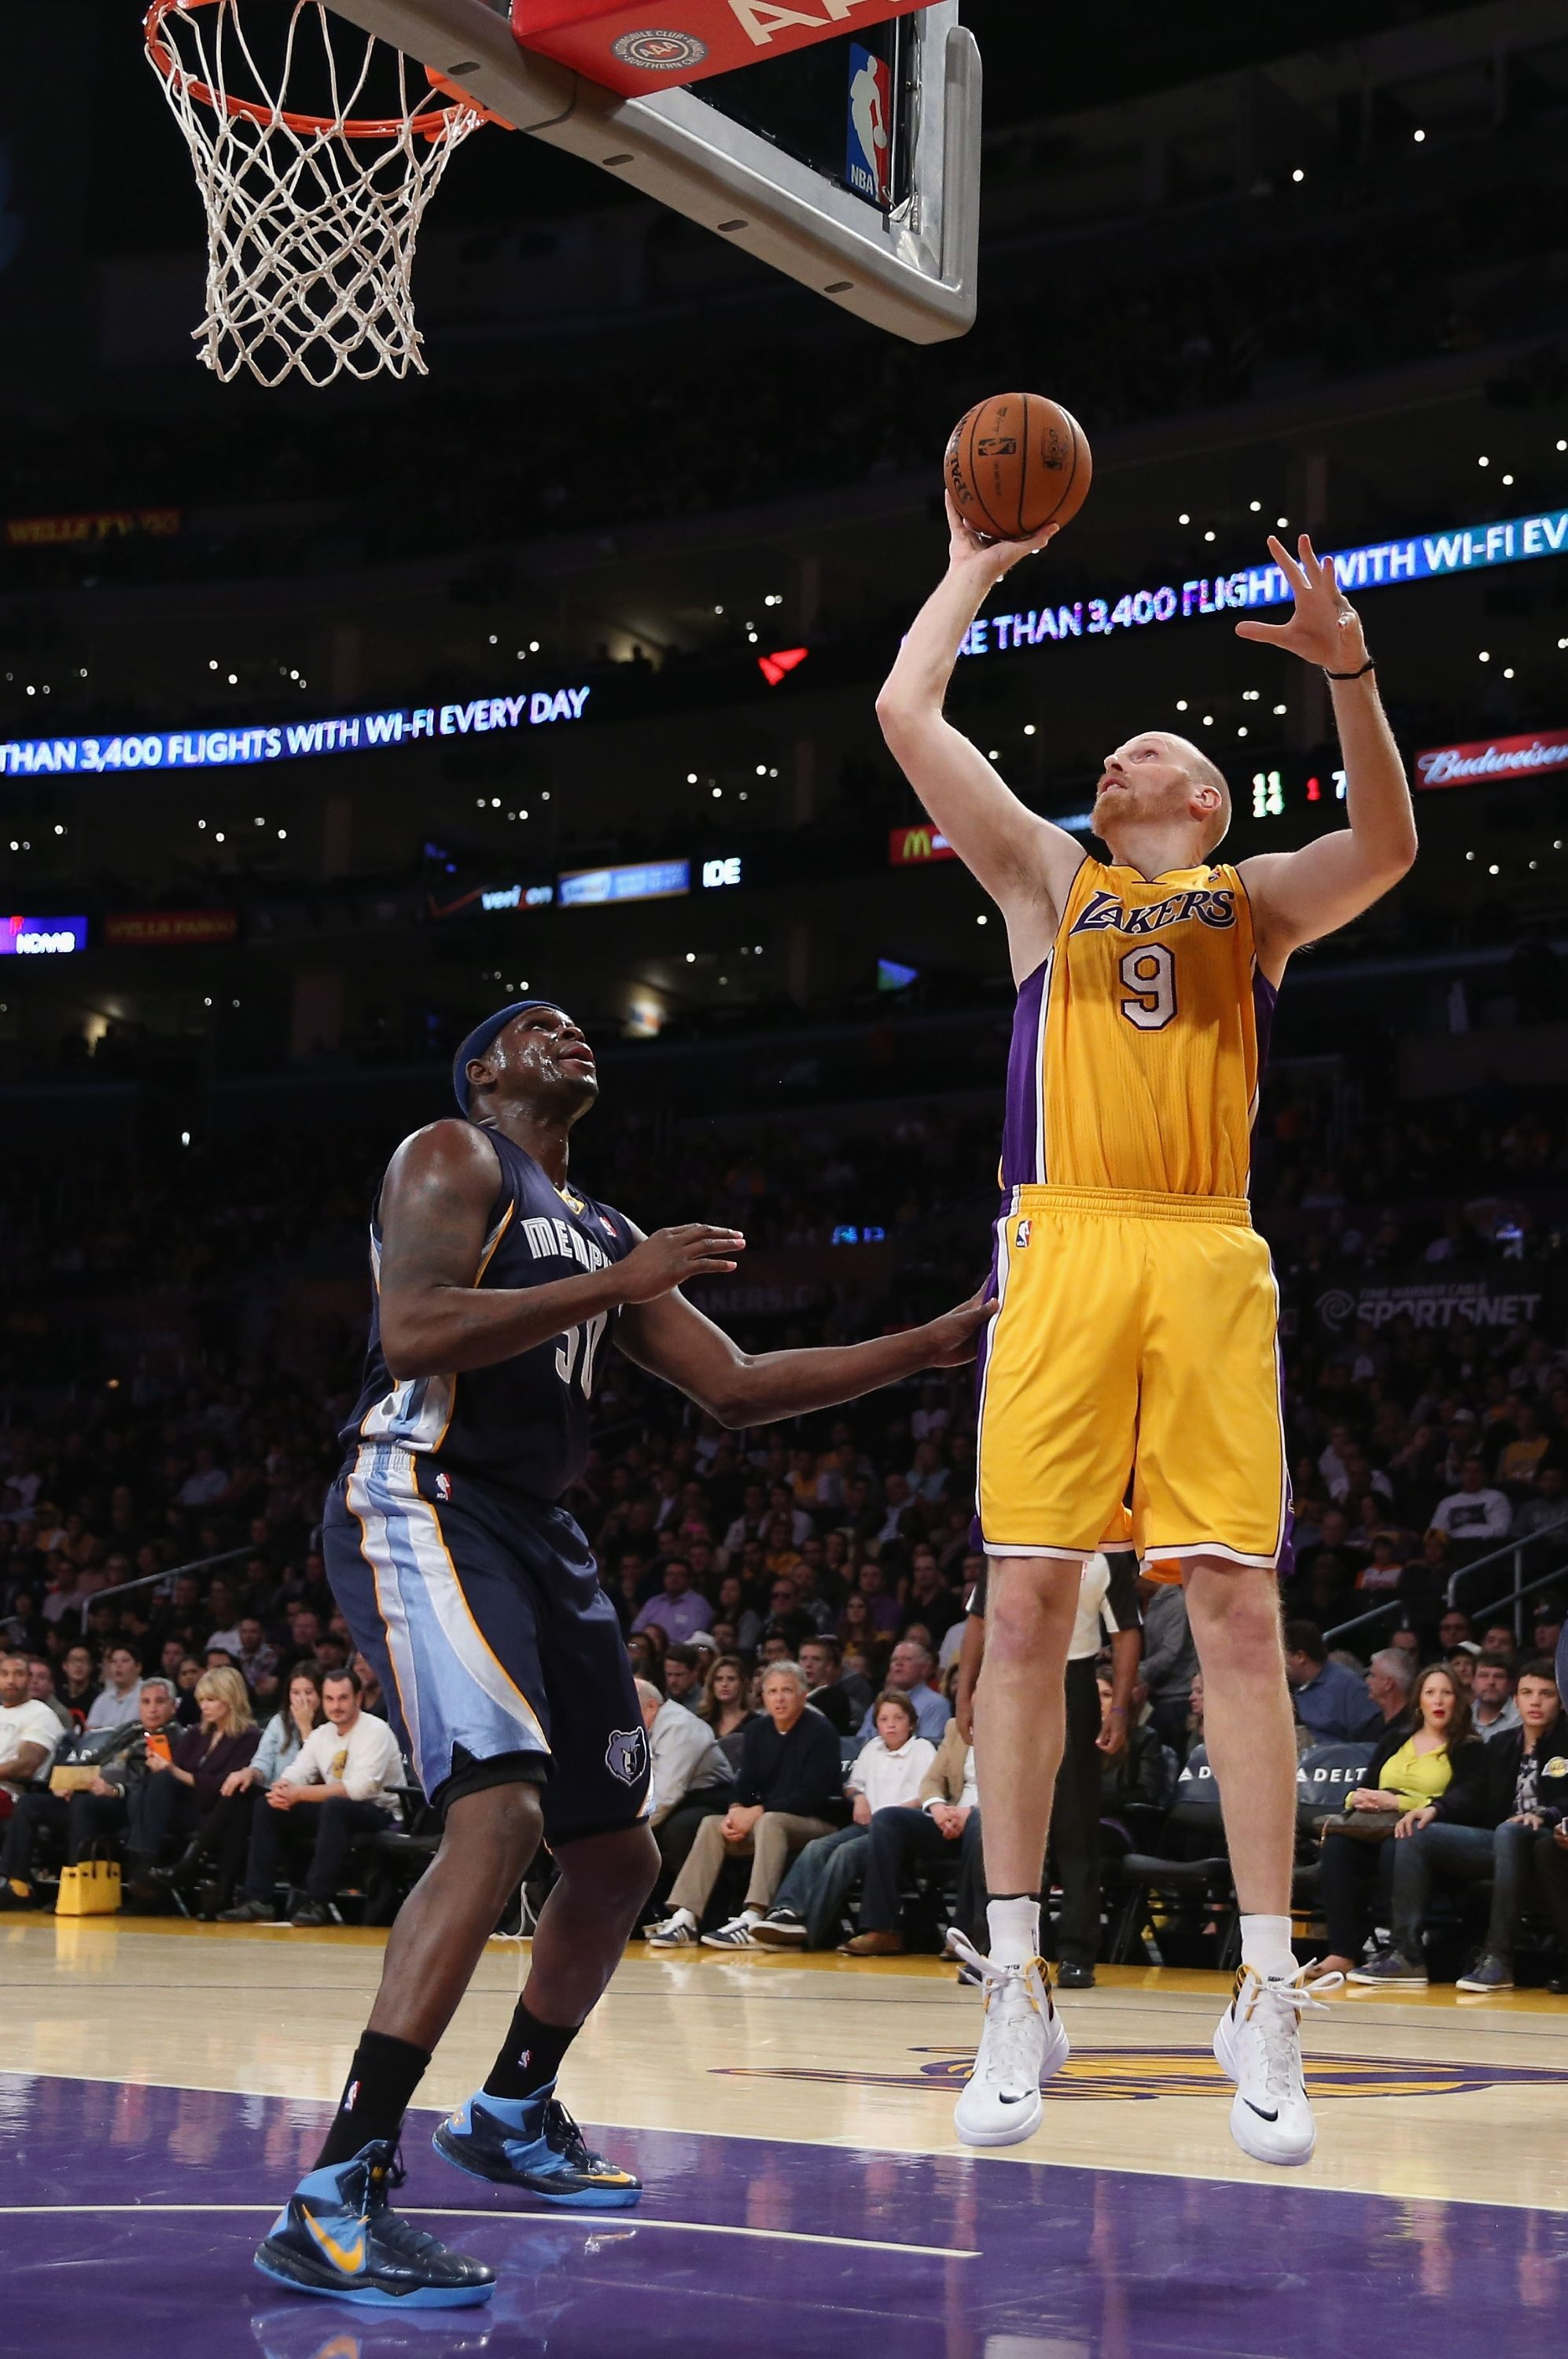 Los Angeles Ca November 15 Chris Kaman 9 Of The Los Angeles Lakers Shoots Over Zach Randolph 50 Of The M Memphis Grizzlies Los Angeles Lakers Los Angeles